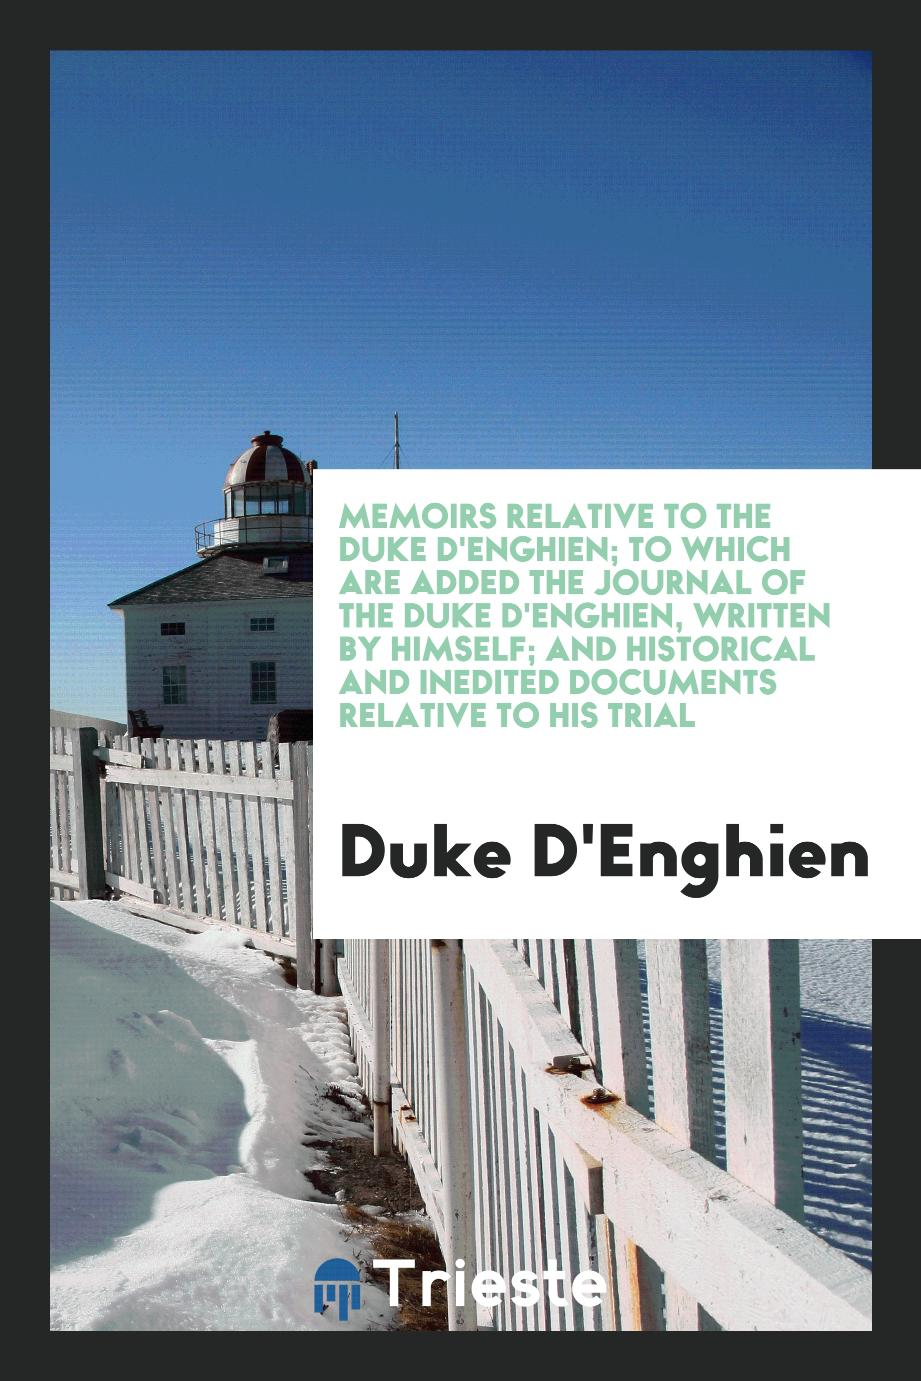 Memoirs Relative to the Duke D'Enghien; To which are Added the Journal of the Duke D'Enghien, Written by Himself; and Historical and Inedited Documents Relative to His Trial